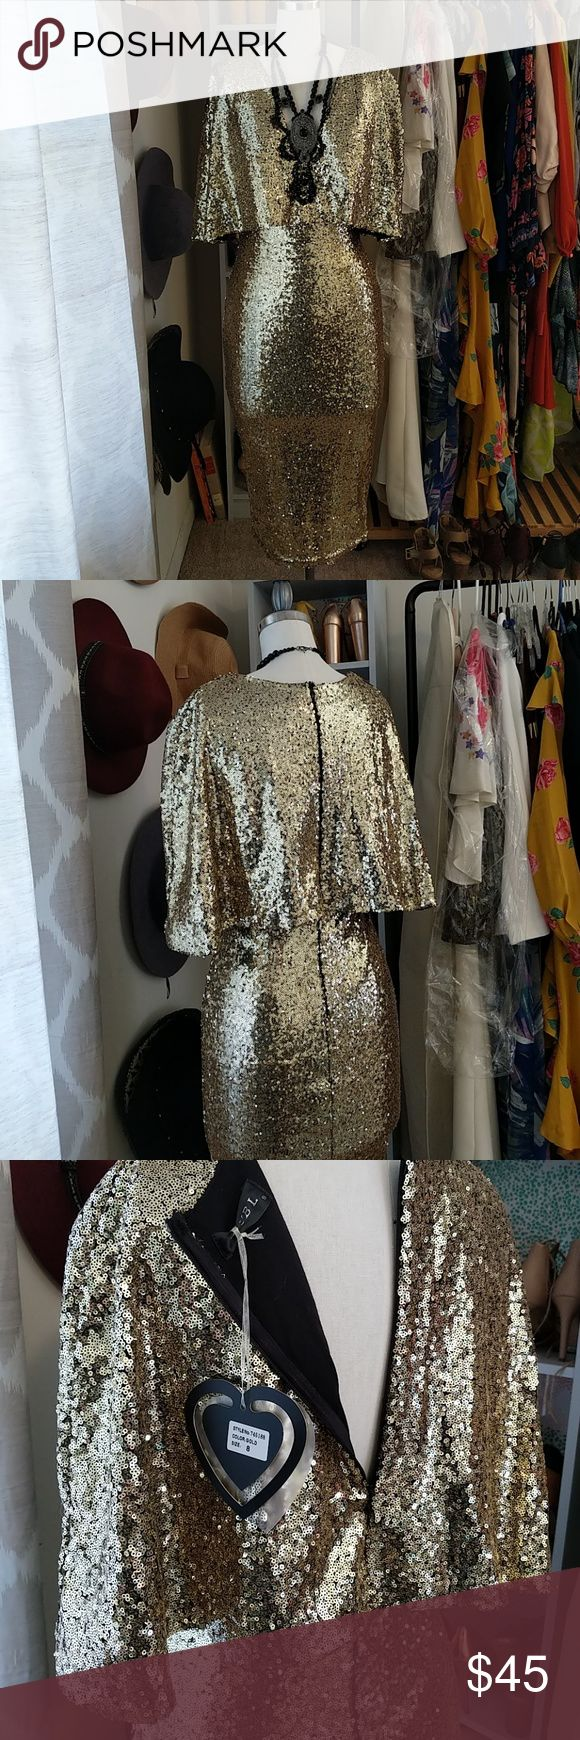 Gold sequin low v-neck dress UK size 8 - I'm a size 4 and it fits me well! New with tags, never worn. Body-con skirt with deep v neckline (black necklace not included) Dresses Midi